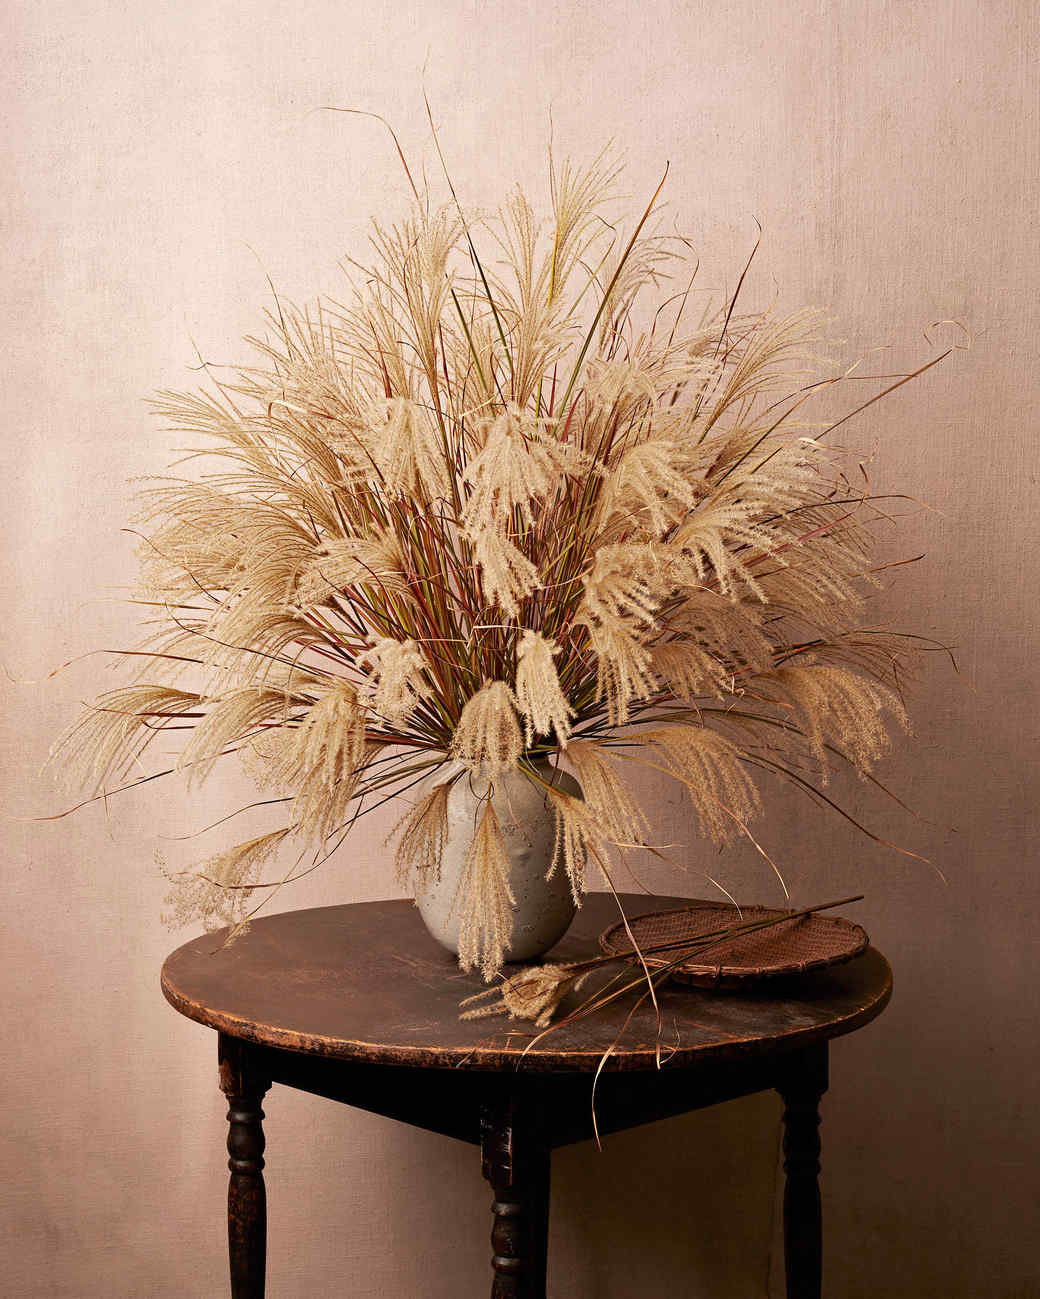 40 Thanksgiving Table Settings to Wow Your Guests : fall flower arrangement 050 exp6 d1126666163605102792817vert from www.marthastewart.com size 1040 x 1299 jpeg 148kB